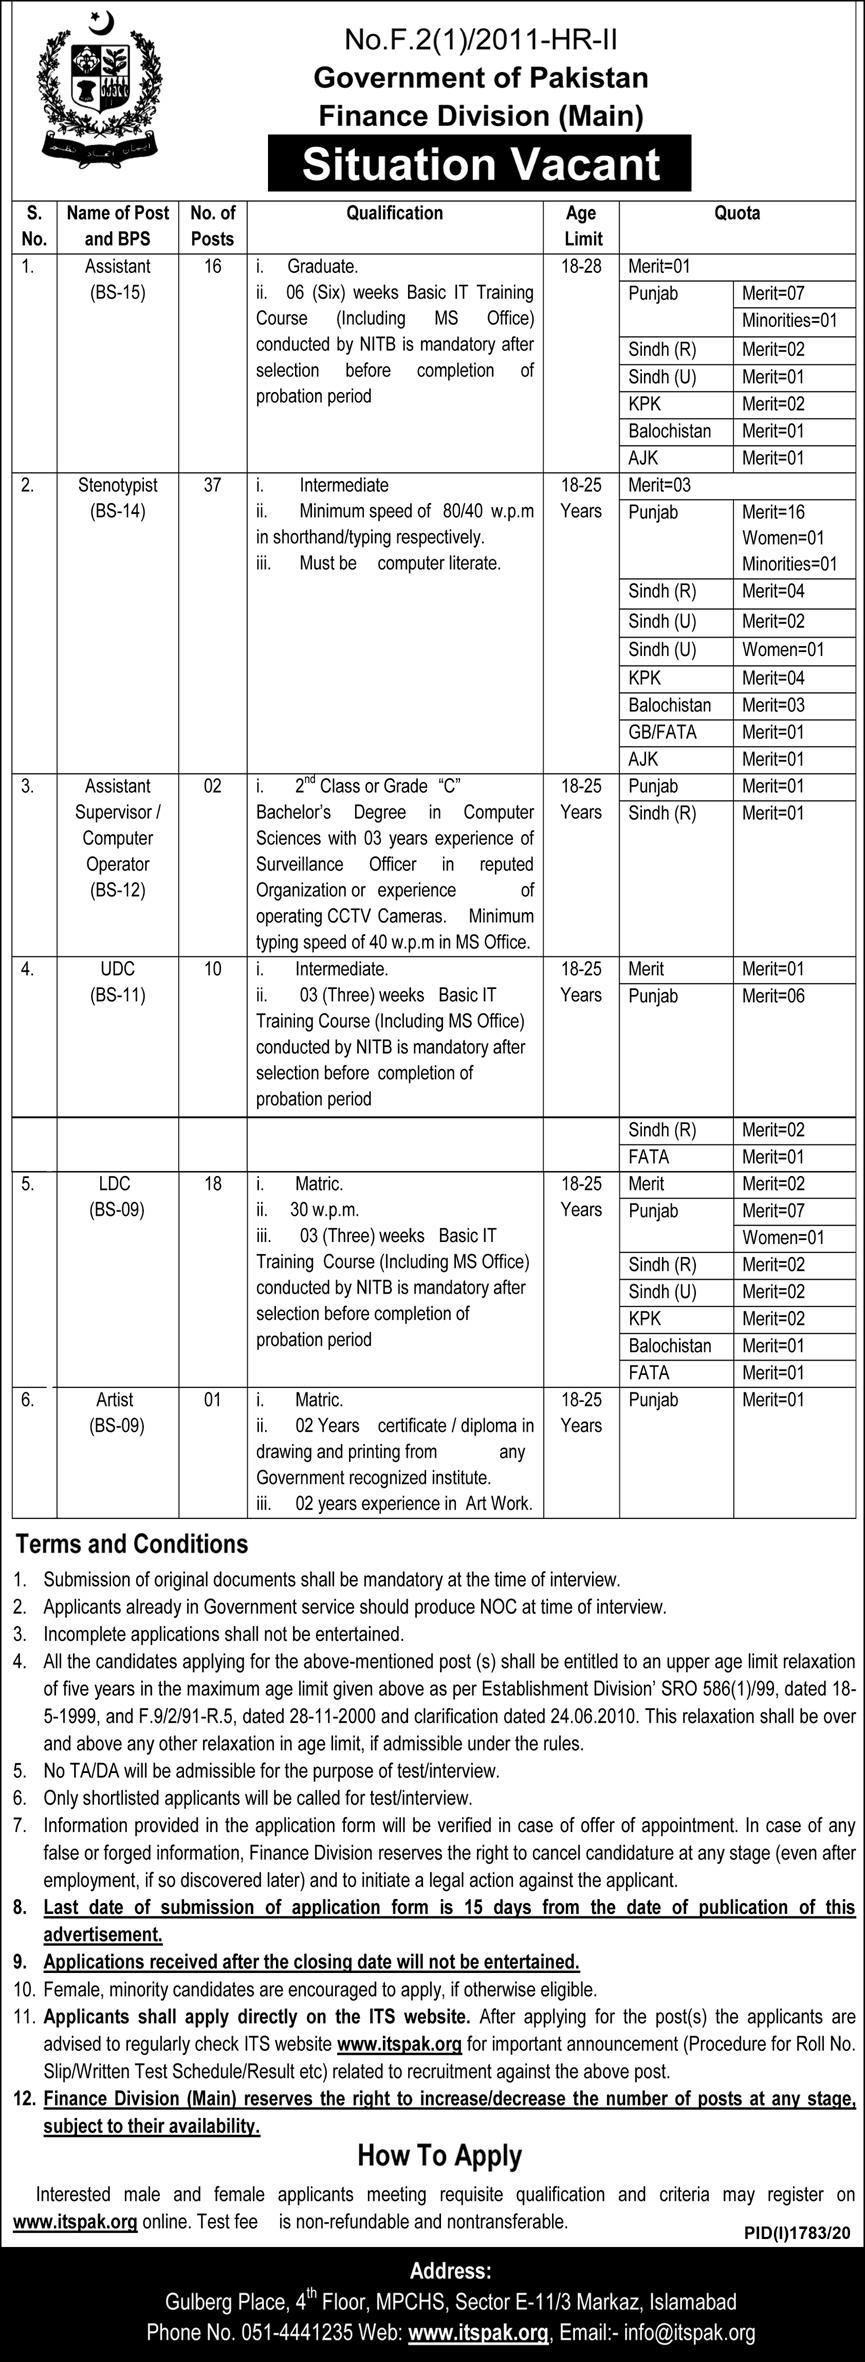 Latest Jobs in Ministry of Finance